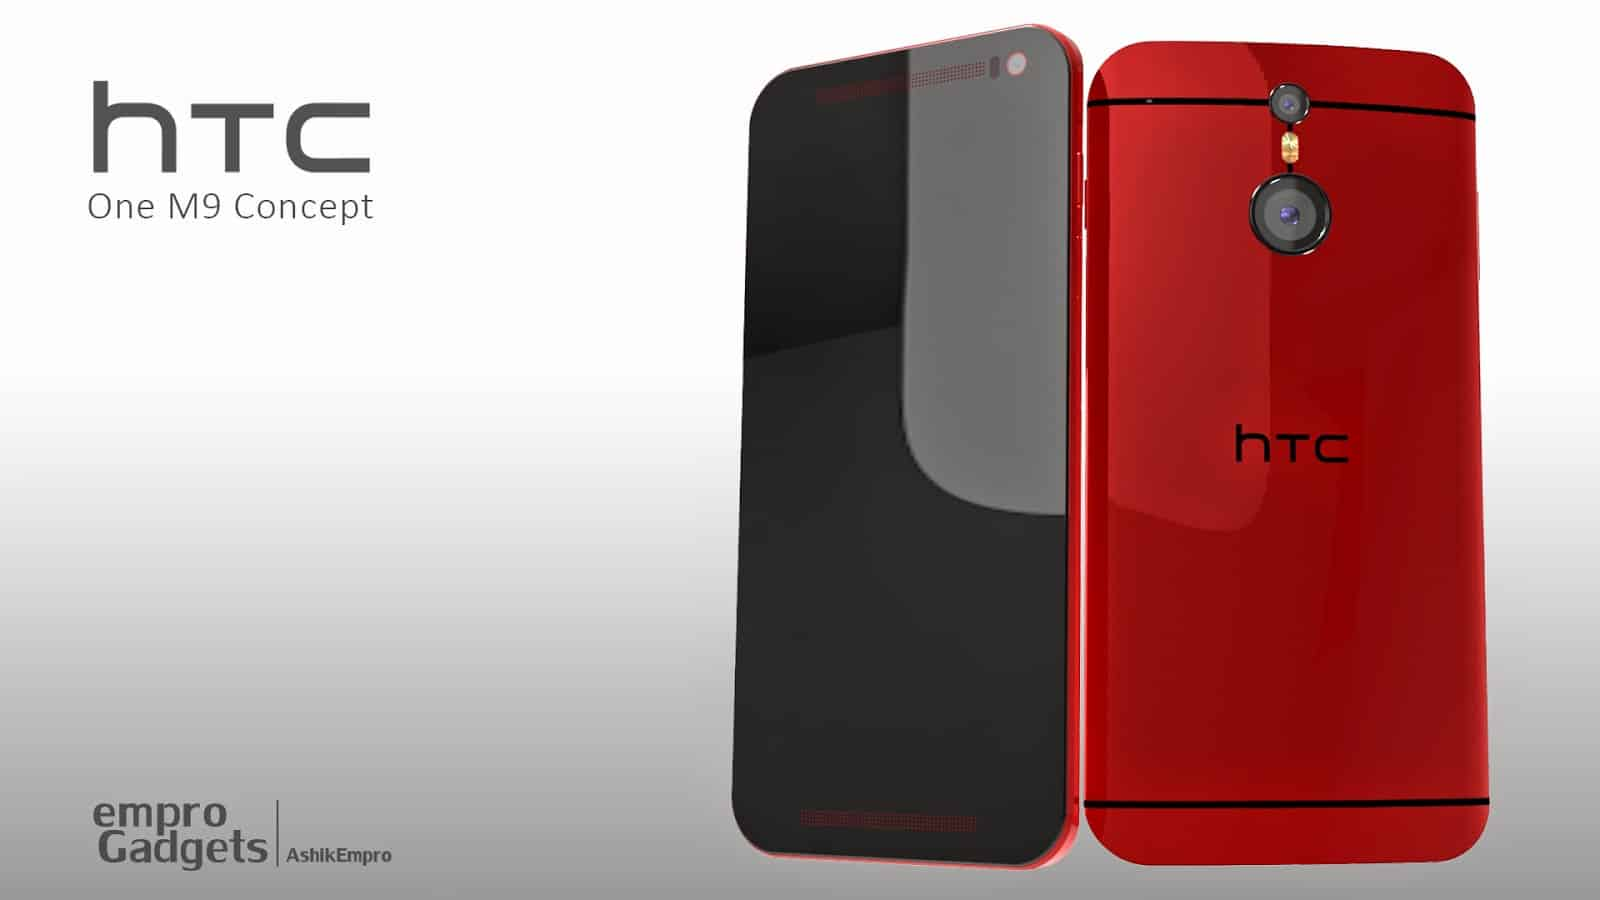 More HTC One (M9) Concept Images Appear